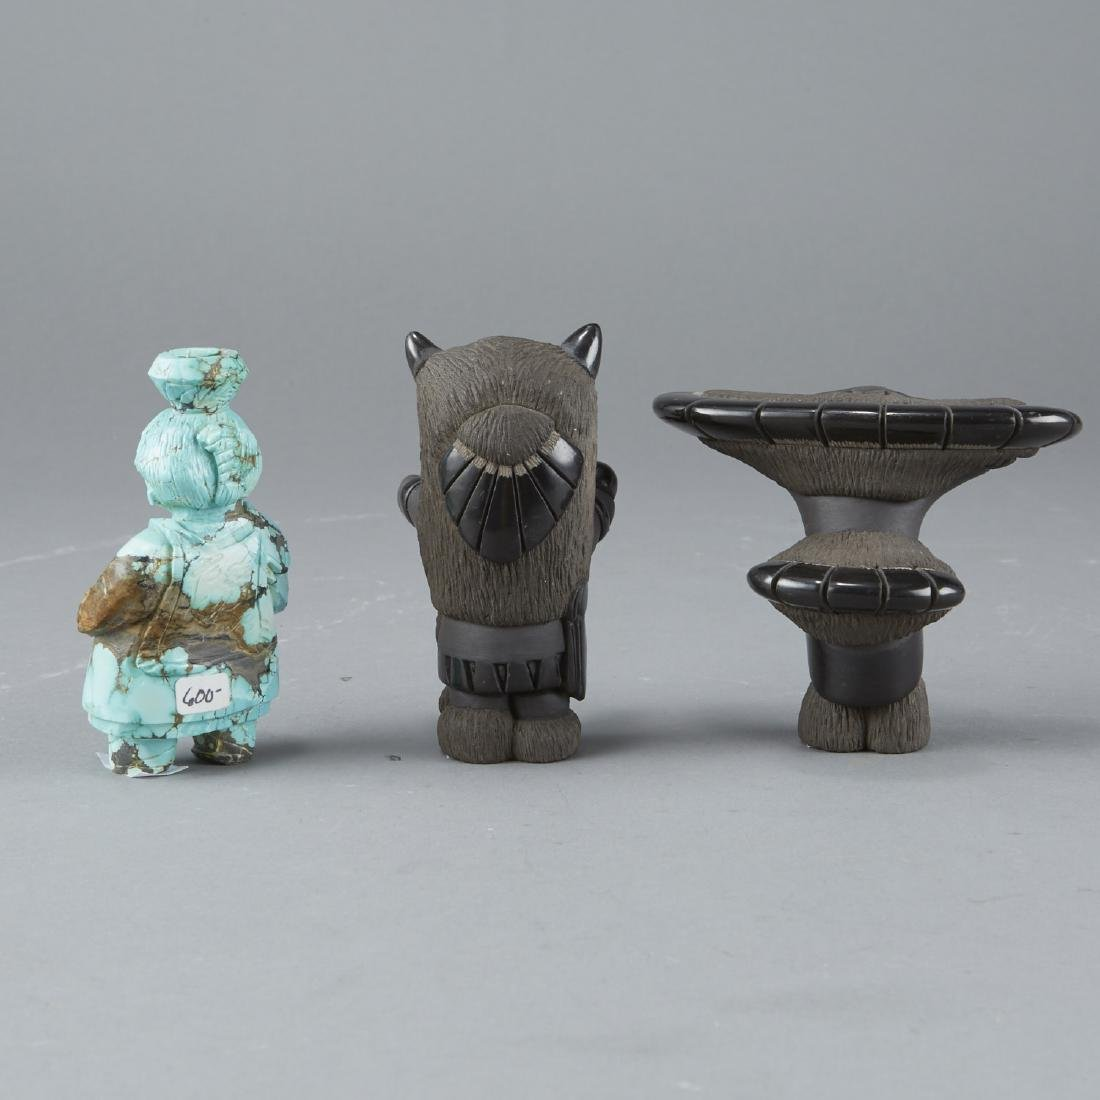 3 Stone and Ceramic Native American Figurines - 2